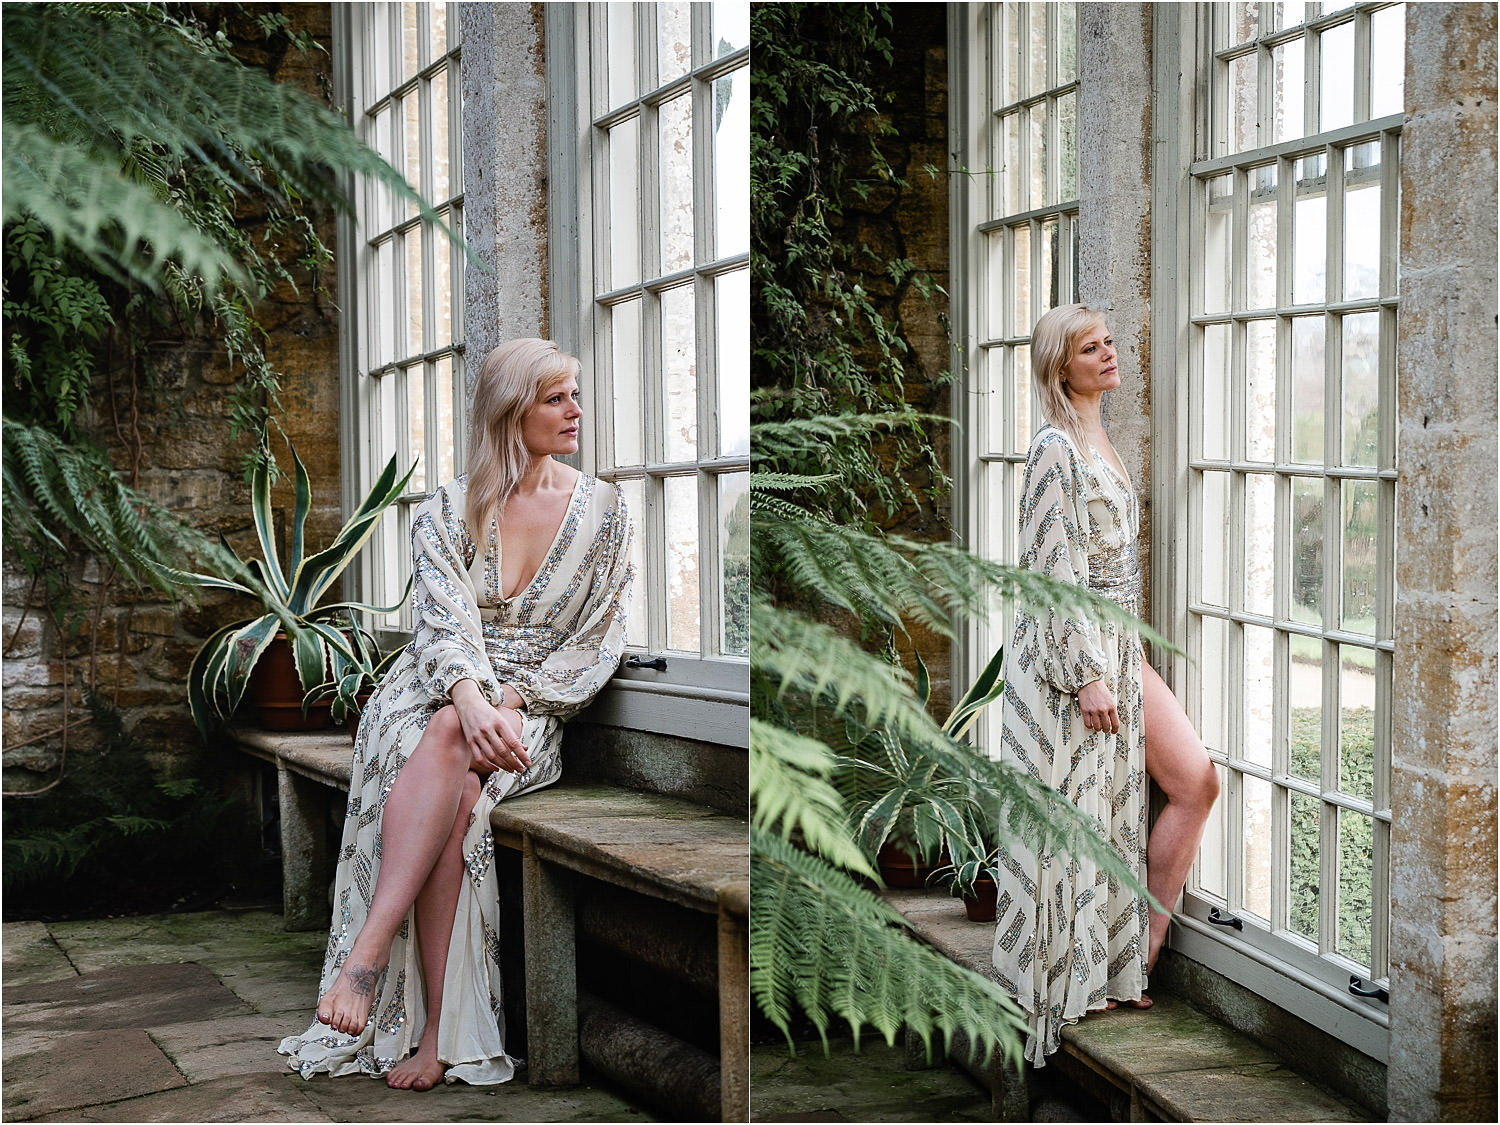 Two images side by side of a woman sat and then stood within the window of the Orangery at Montacute House, wearing a sequined dress.